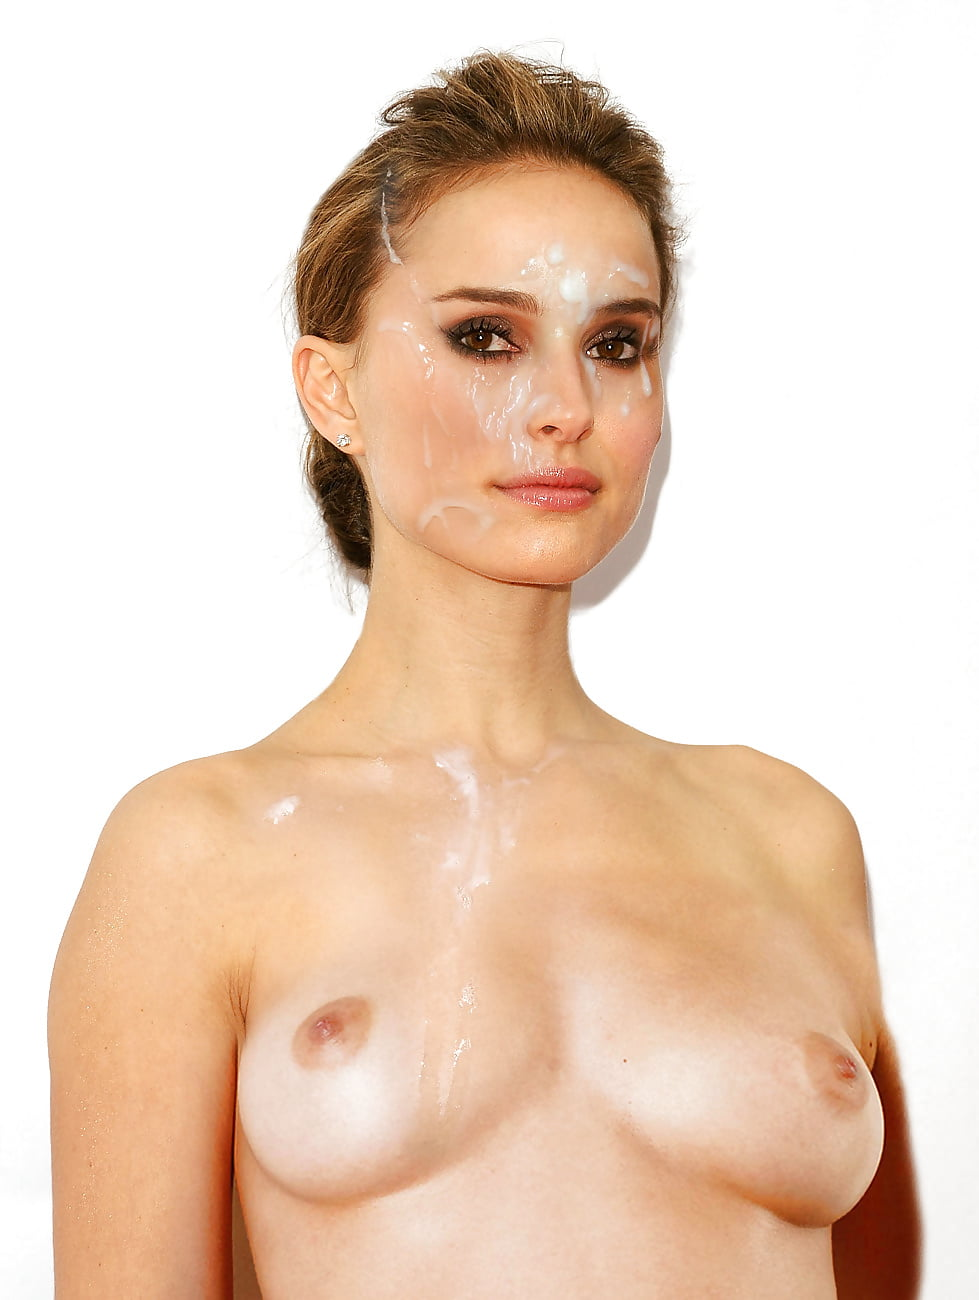 Keira knightley pics exposed breasts — pic 4